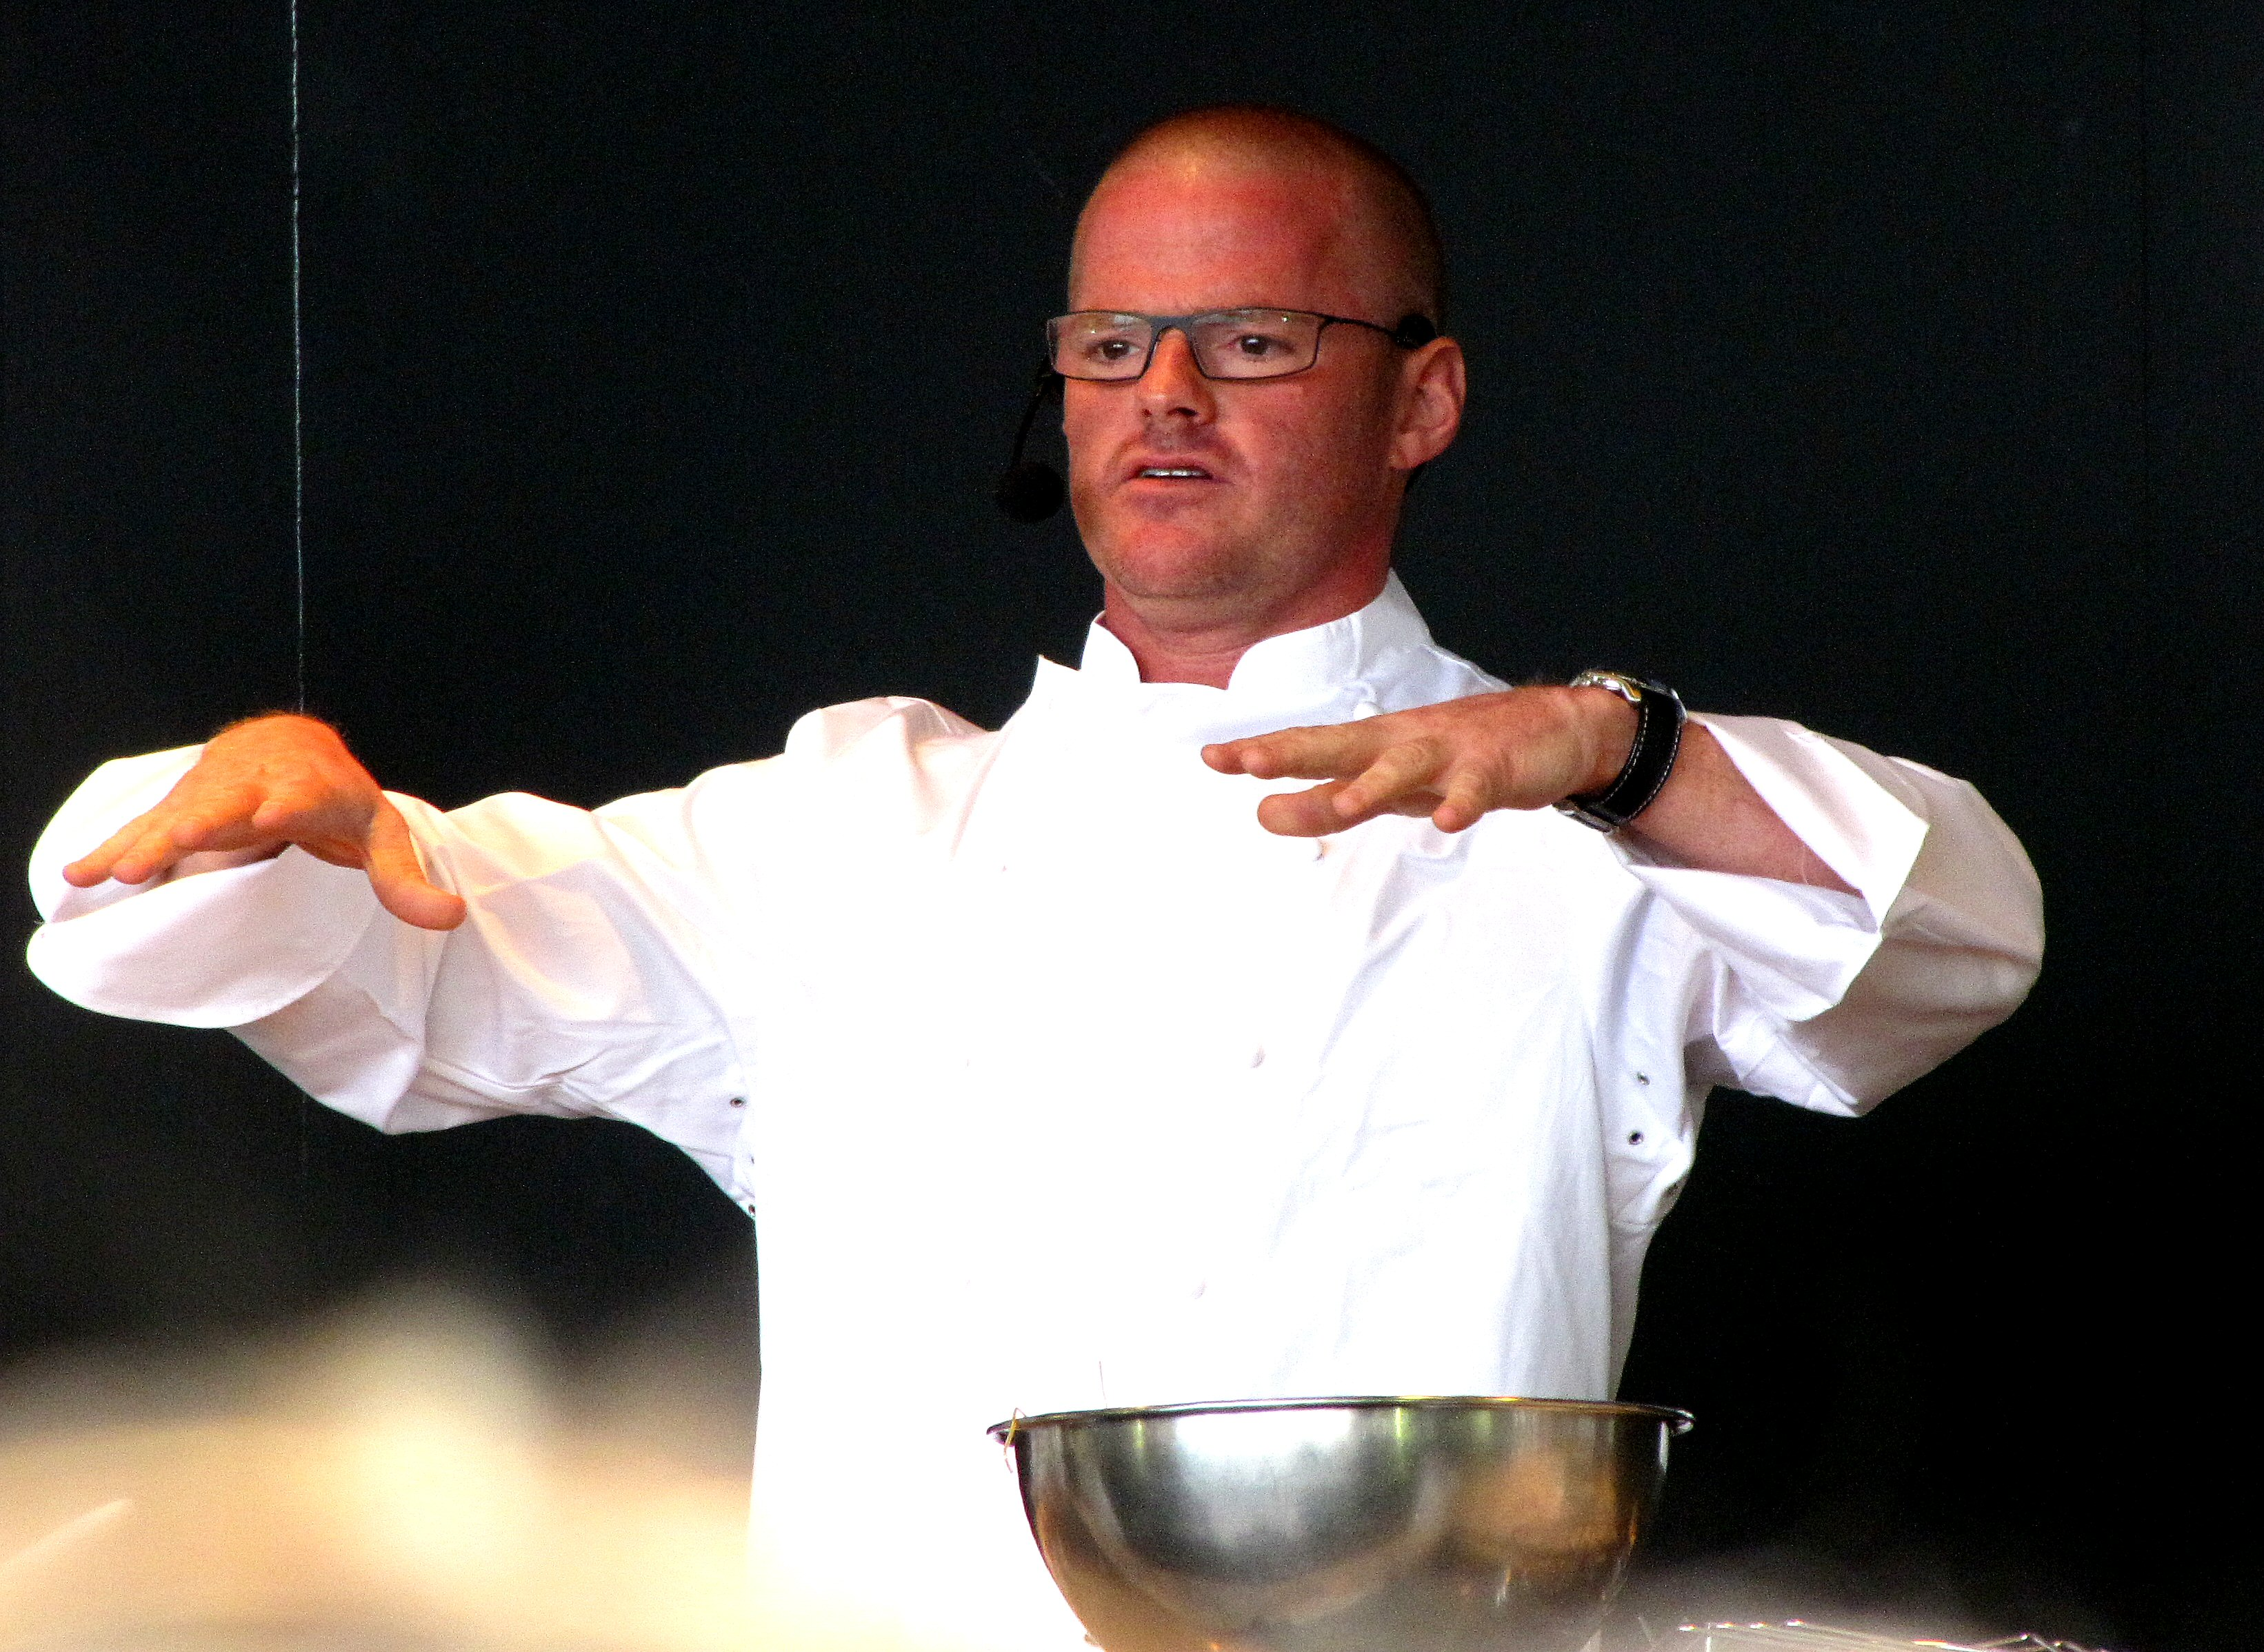 heston-blumenthal-of-the-fat-duck-talking-about-south-africa